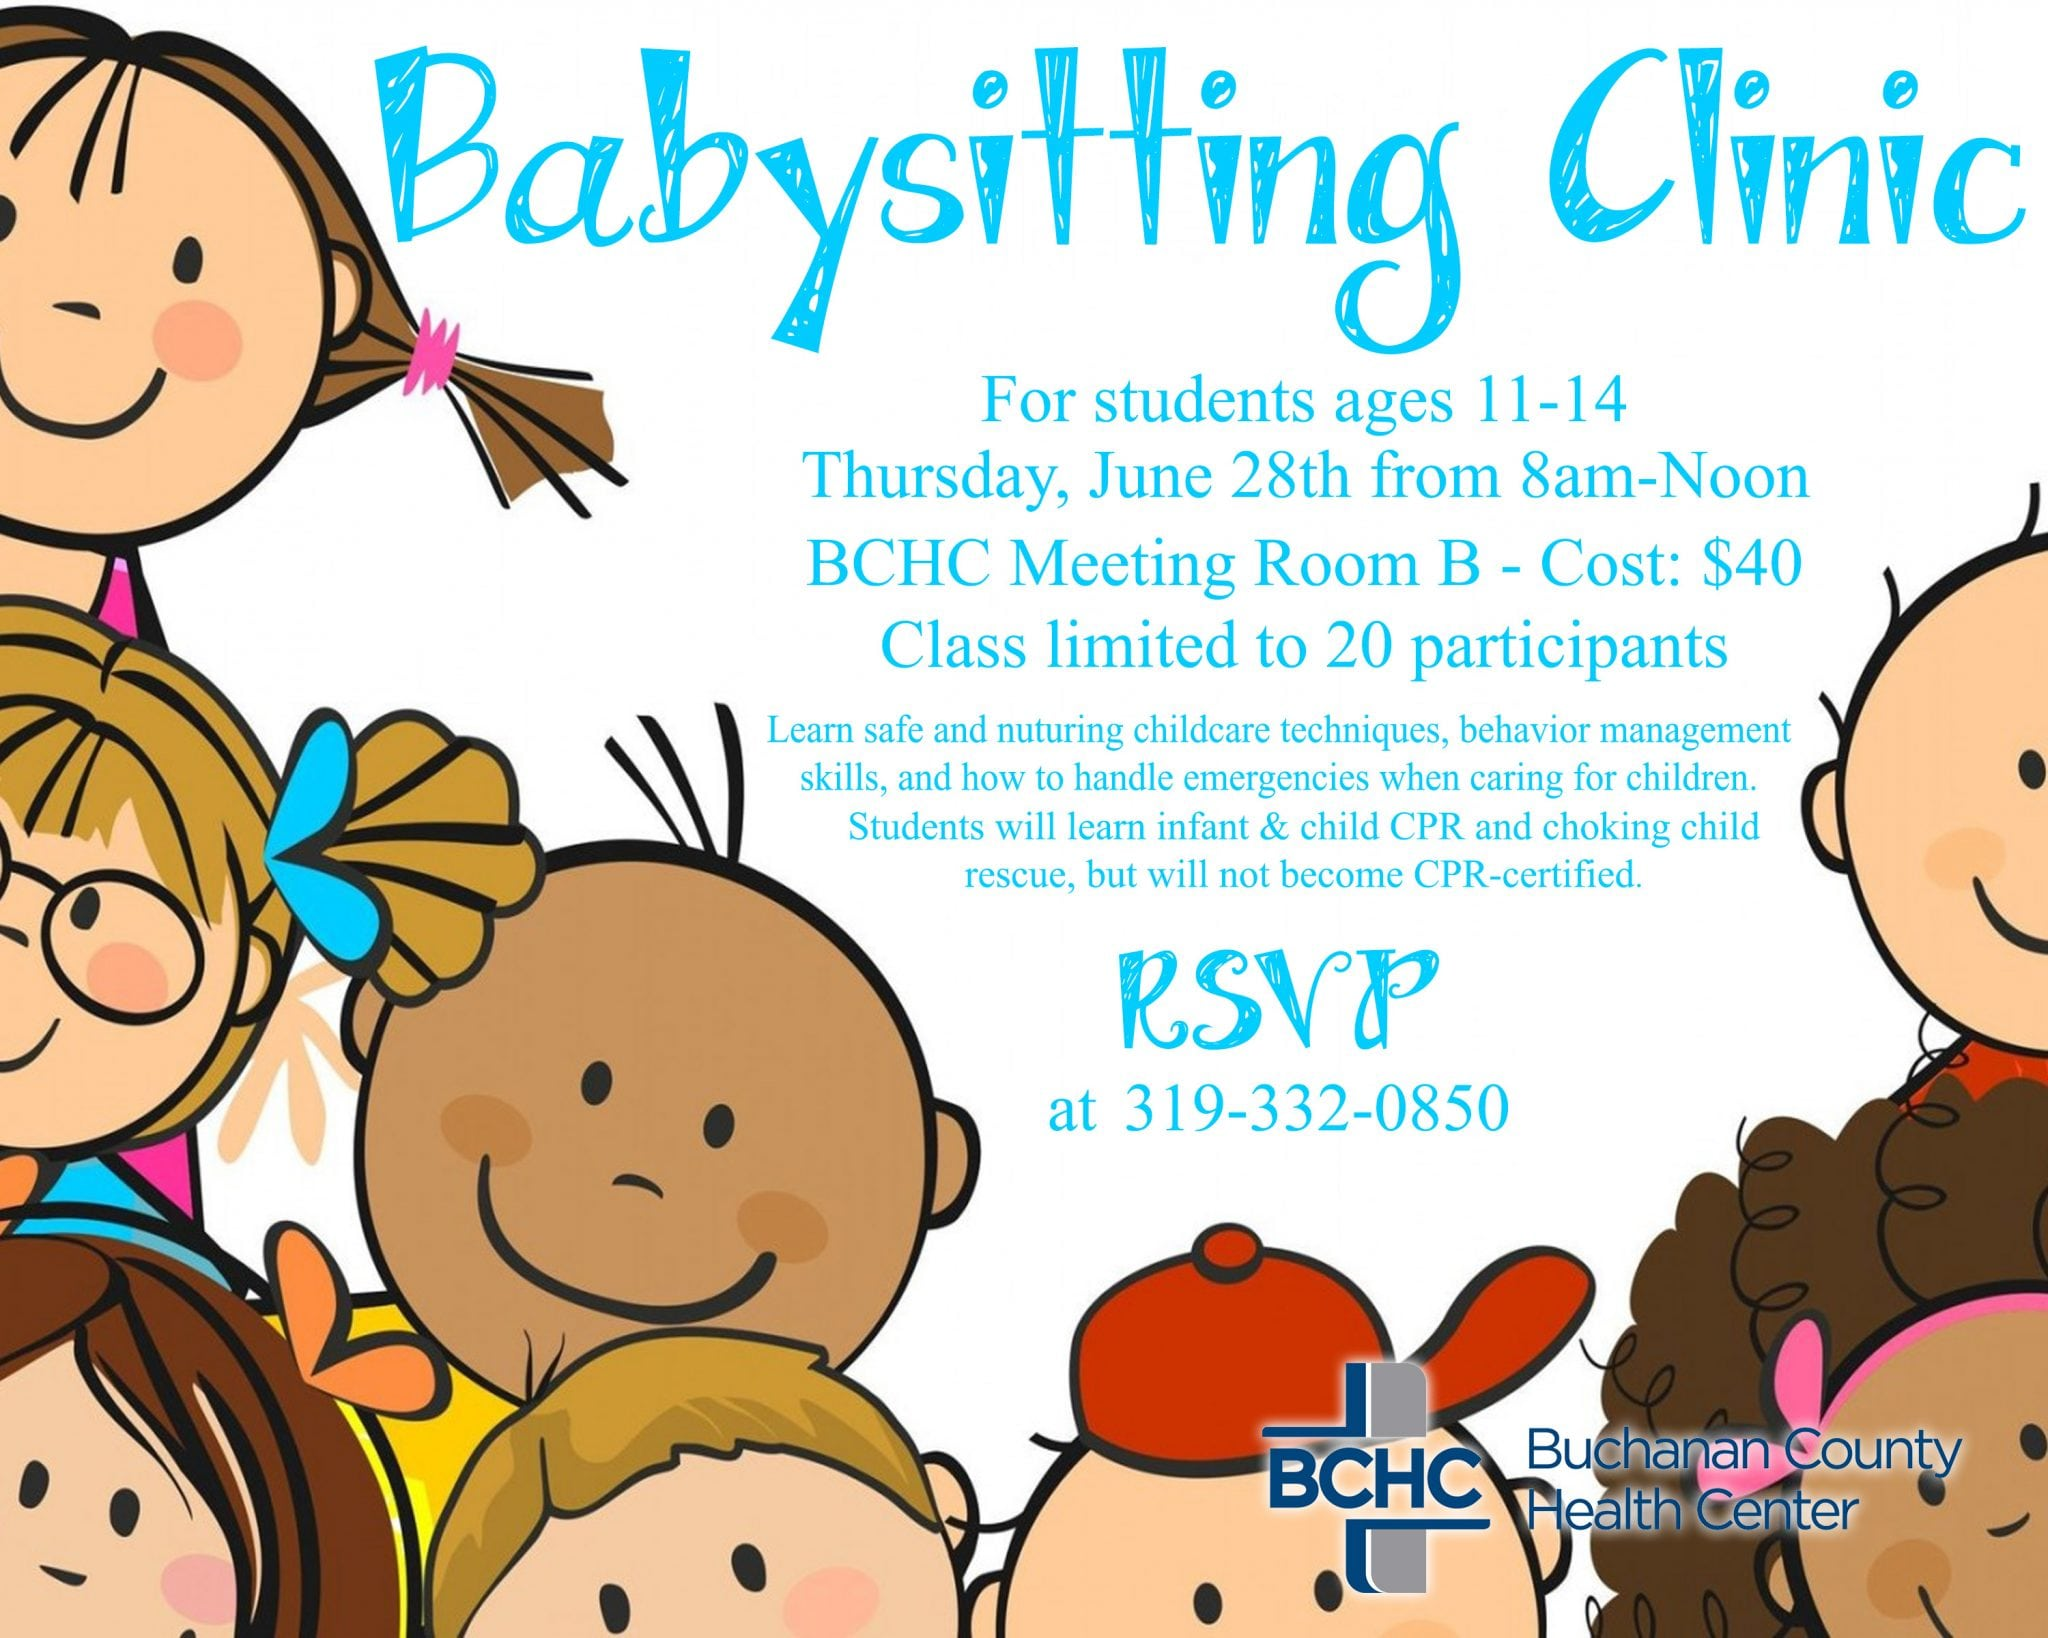 Babysitting Clinic to be offered at BCHC on June 28th